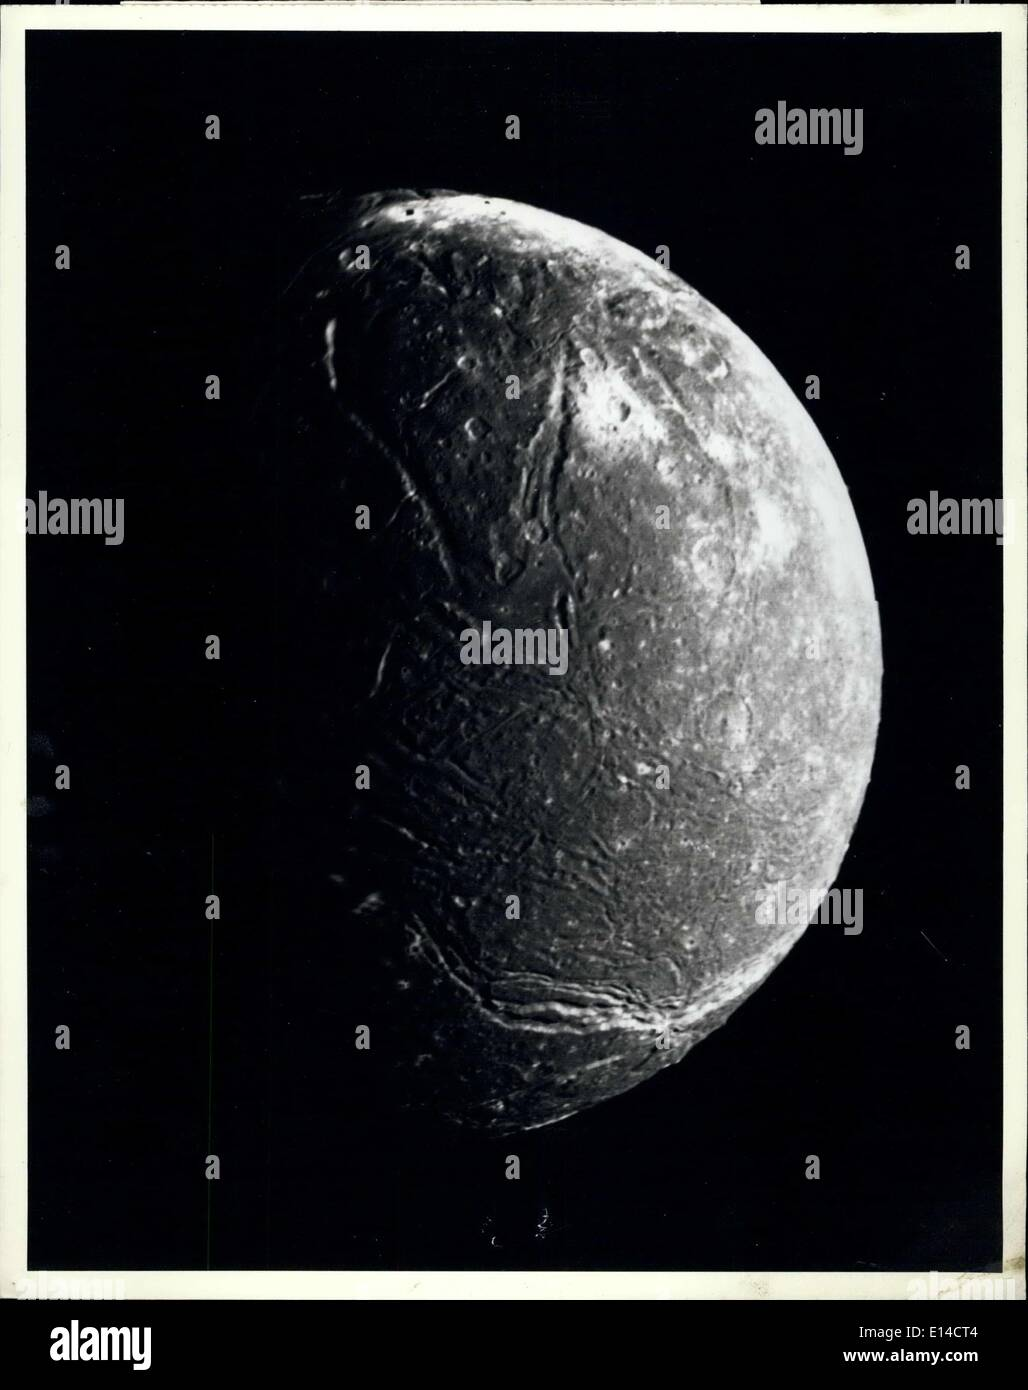 Apr. 17, 2012 - This mosaic of the four highest -resolution images of Ariel represents the most detailed Voyager 2 picture of this satellite of Uranus. The images were taken through the clear filter of Voyager's narrow -angle camera on Jan, 1986, at a distance of about 130,000 kilometers (80,000 miles). Ariel about 1,200 km (750 mi) in diameter, the resolution here is 2.4 km (1.5 mi). Much of Ariel;'s surface is densely pitted with craters 5 to 10 km (3 to 6 mi) across. These craters are close to the threshold of detection in this picture - Stock Image